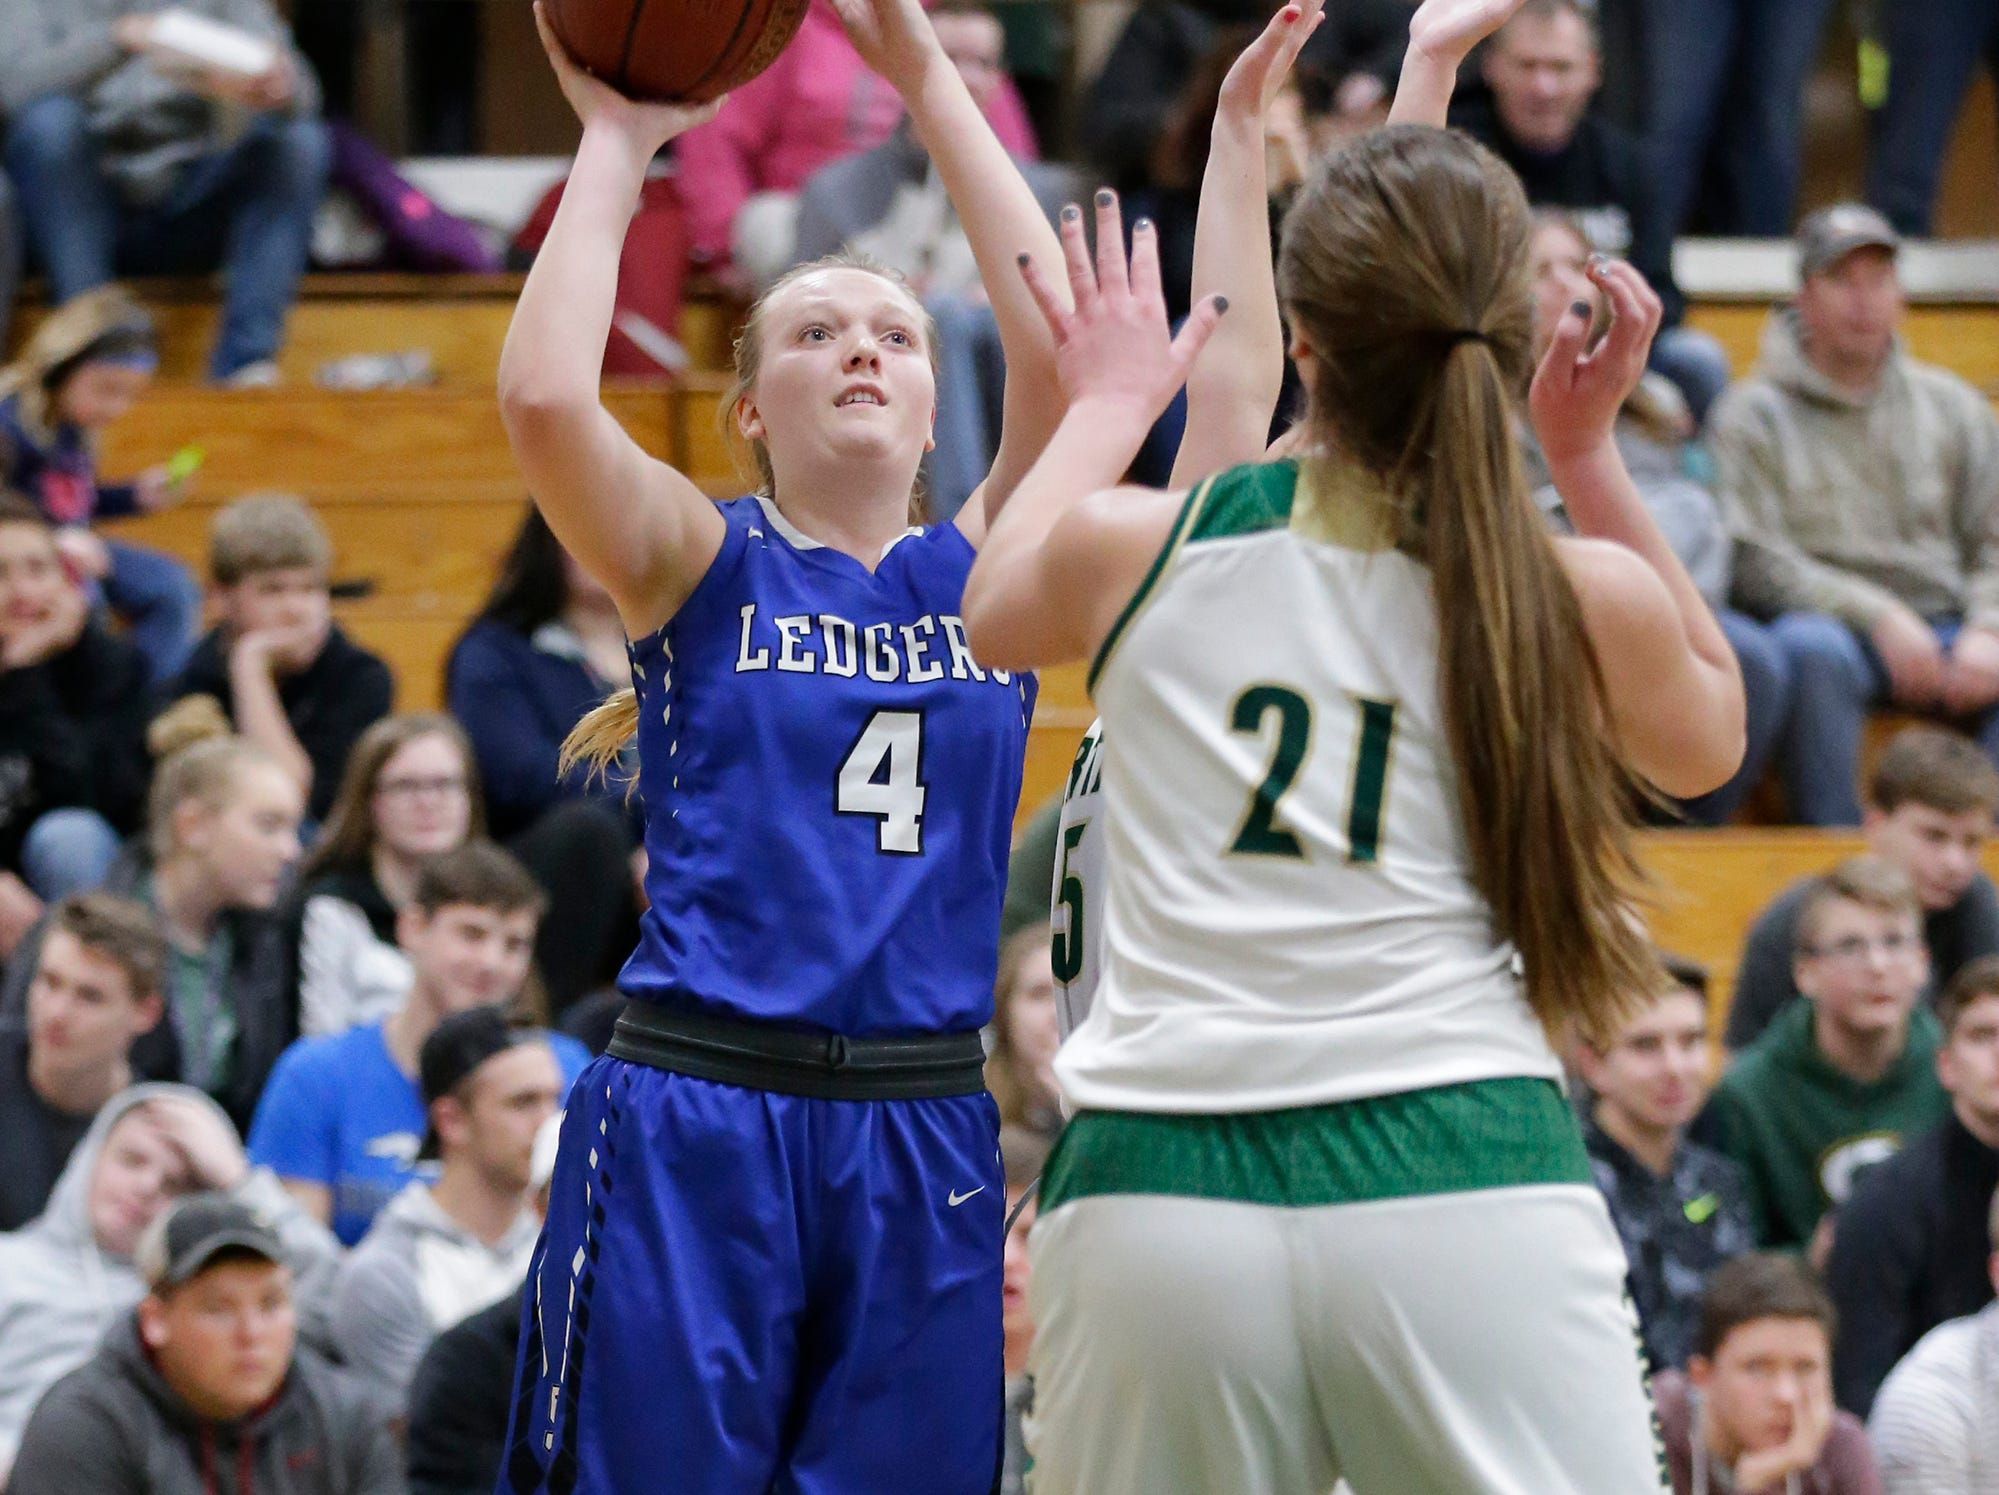 St. Mary's Springs Academy girls basketball's Brianna Freund goes up for a basket against Laconia High School Tuesday, January 15, 2019 during their game in Rosendale. Laconia won the game 57-45. Doug Raflik/USA TODAY NETWORK-Wisconsin